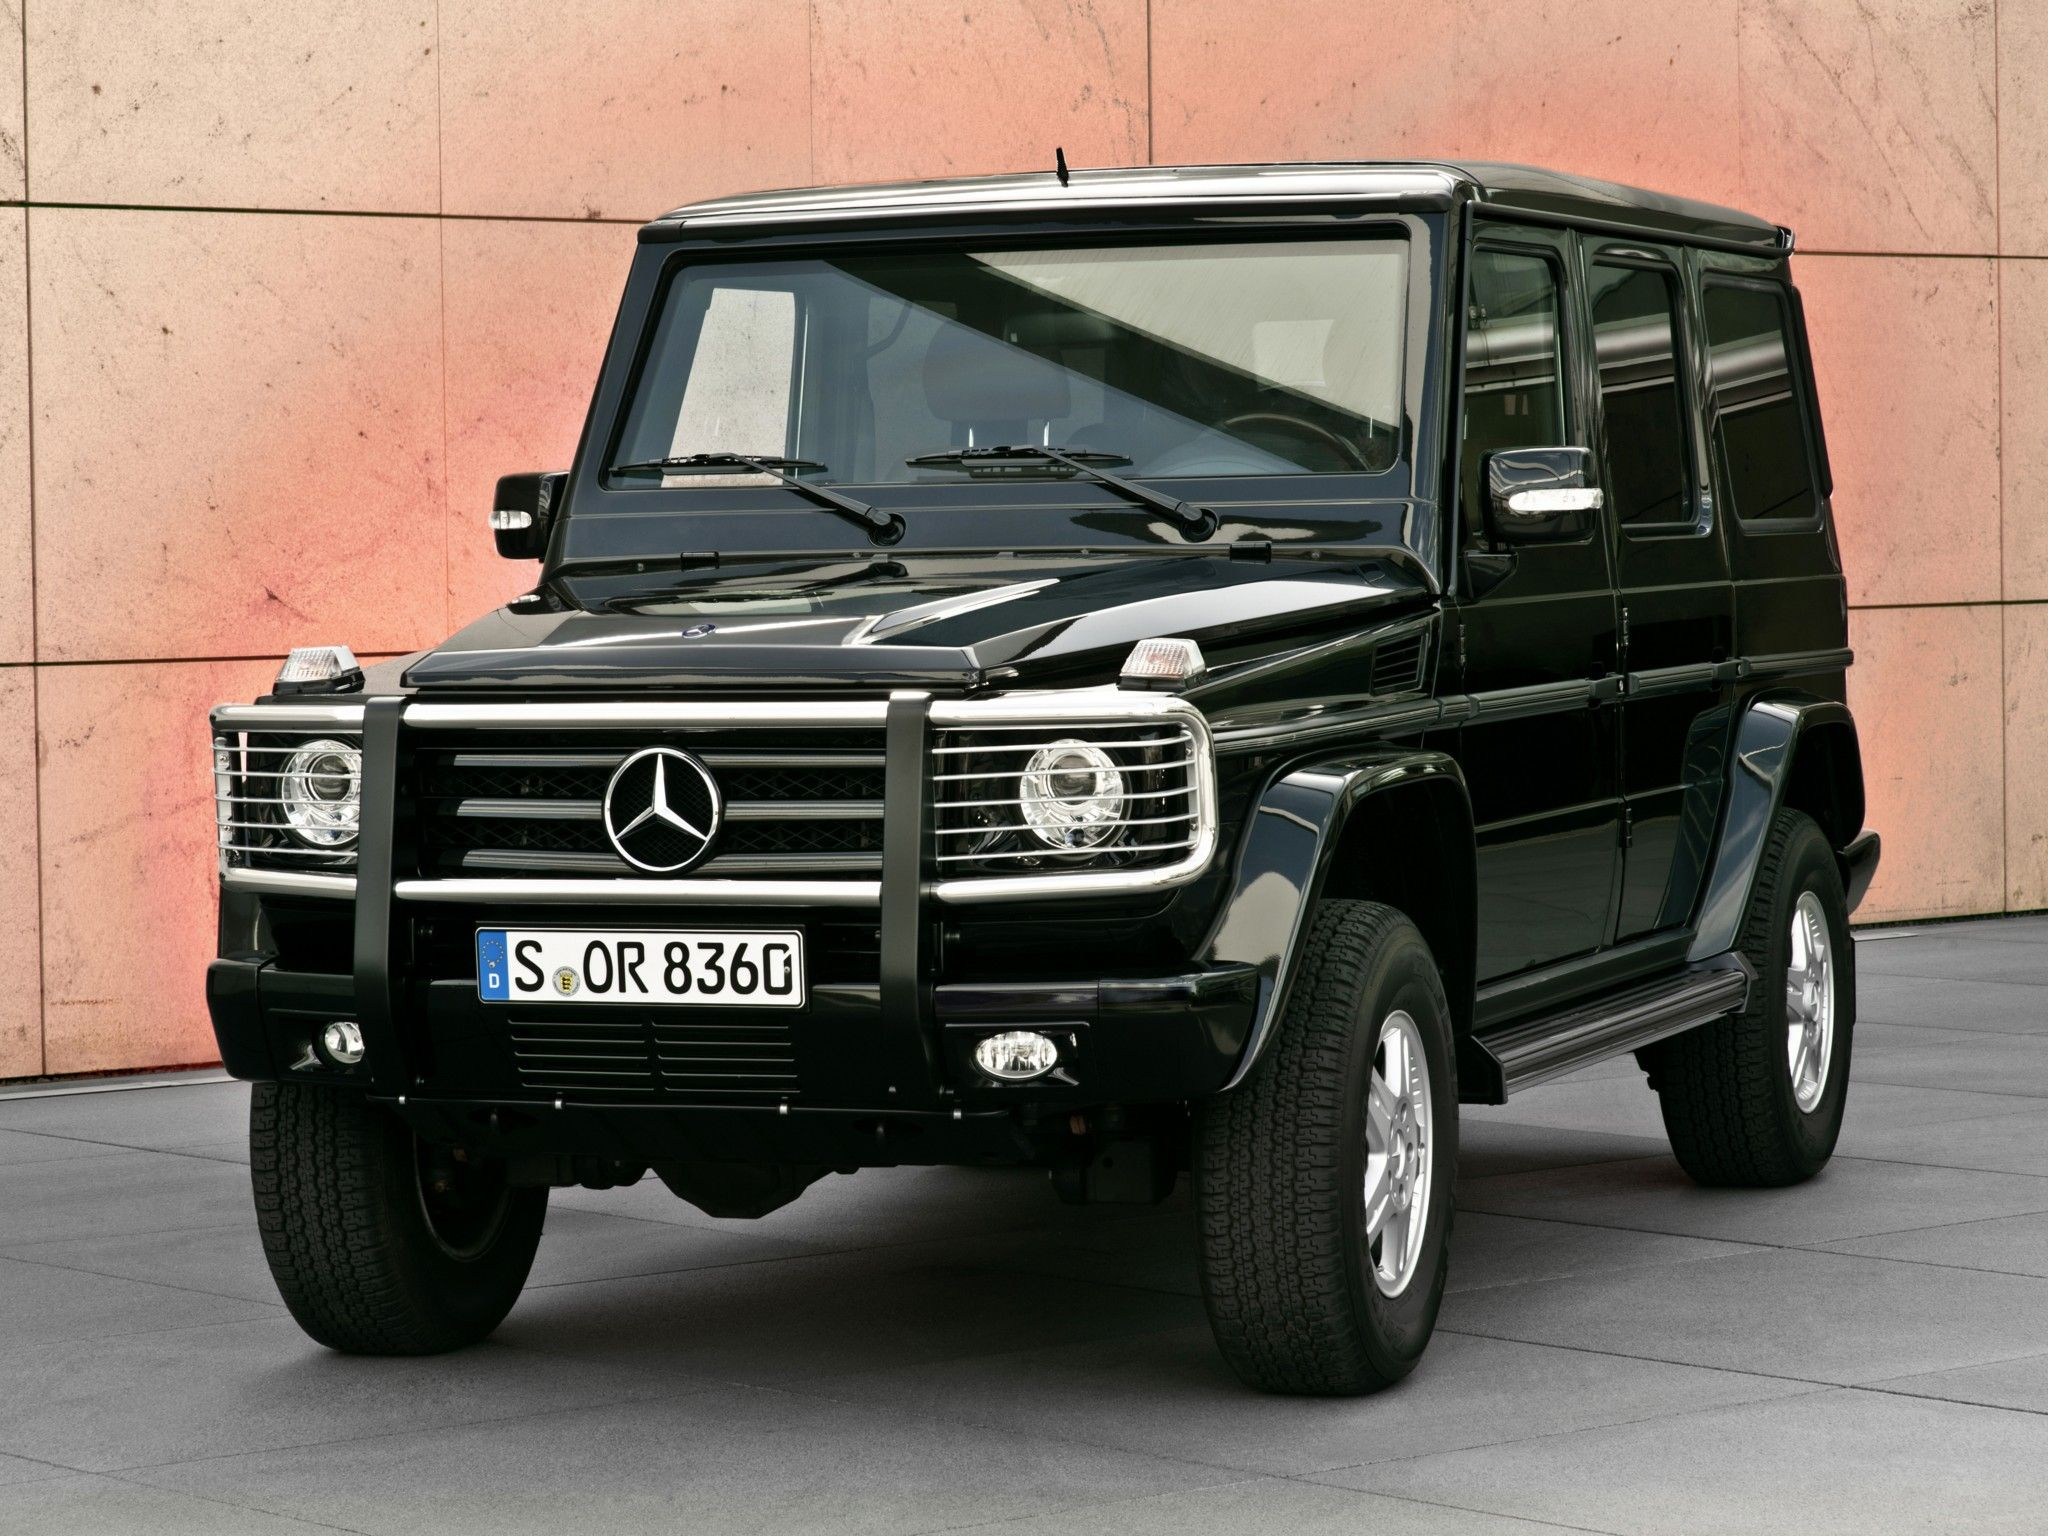 2009 armored mercedes benz g 500 guard w463 suv 4x4 g wallpaper 2048x1536 130318. Black Bedroom Furniture Sets. Home Design Ideas